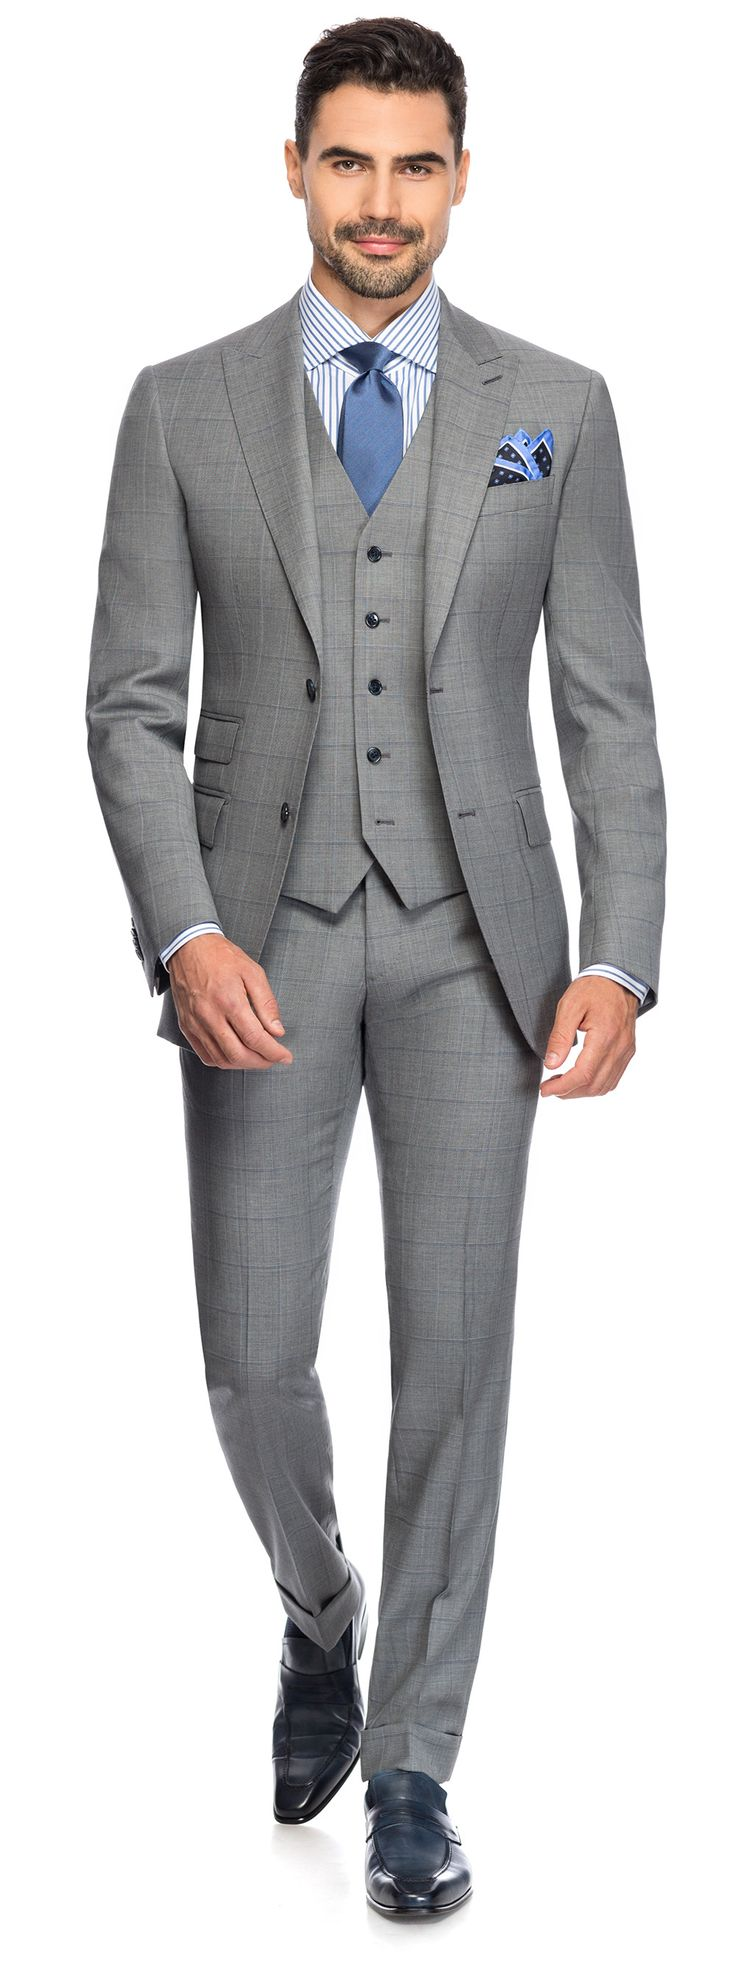 NAVY OVER CHECK SUIT